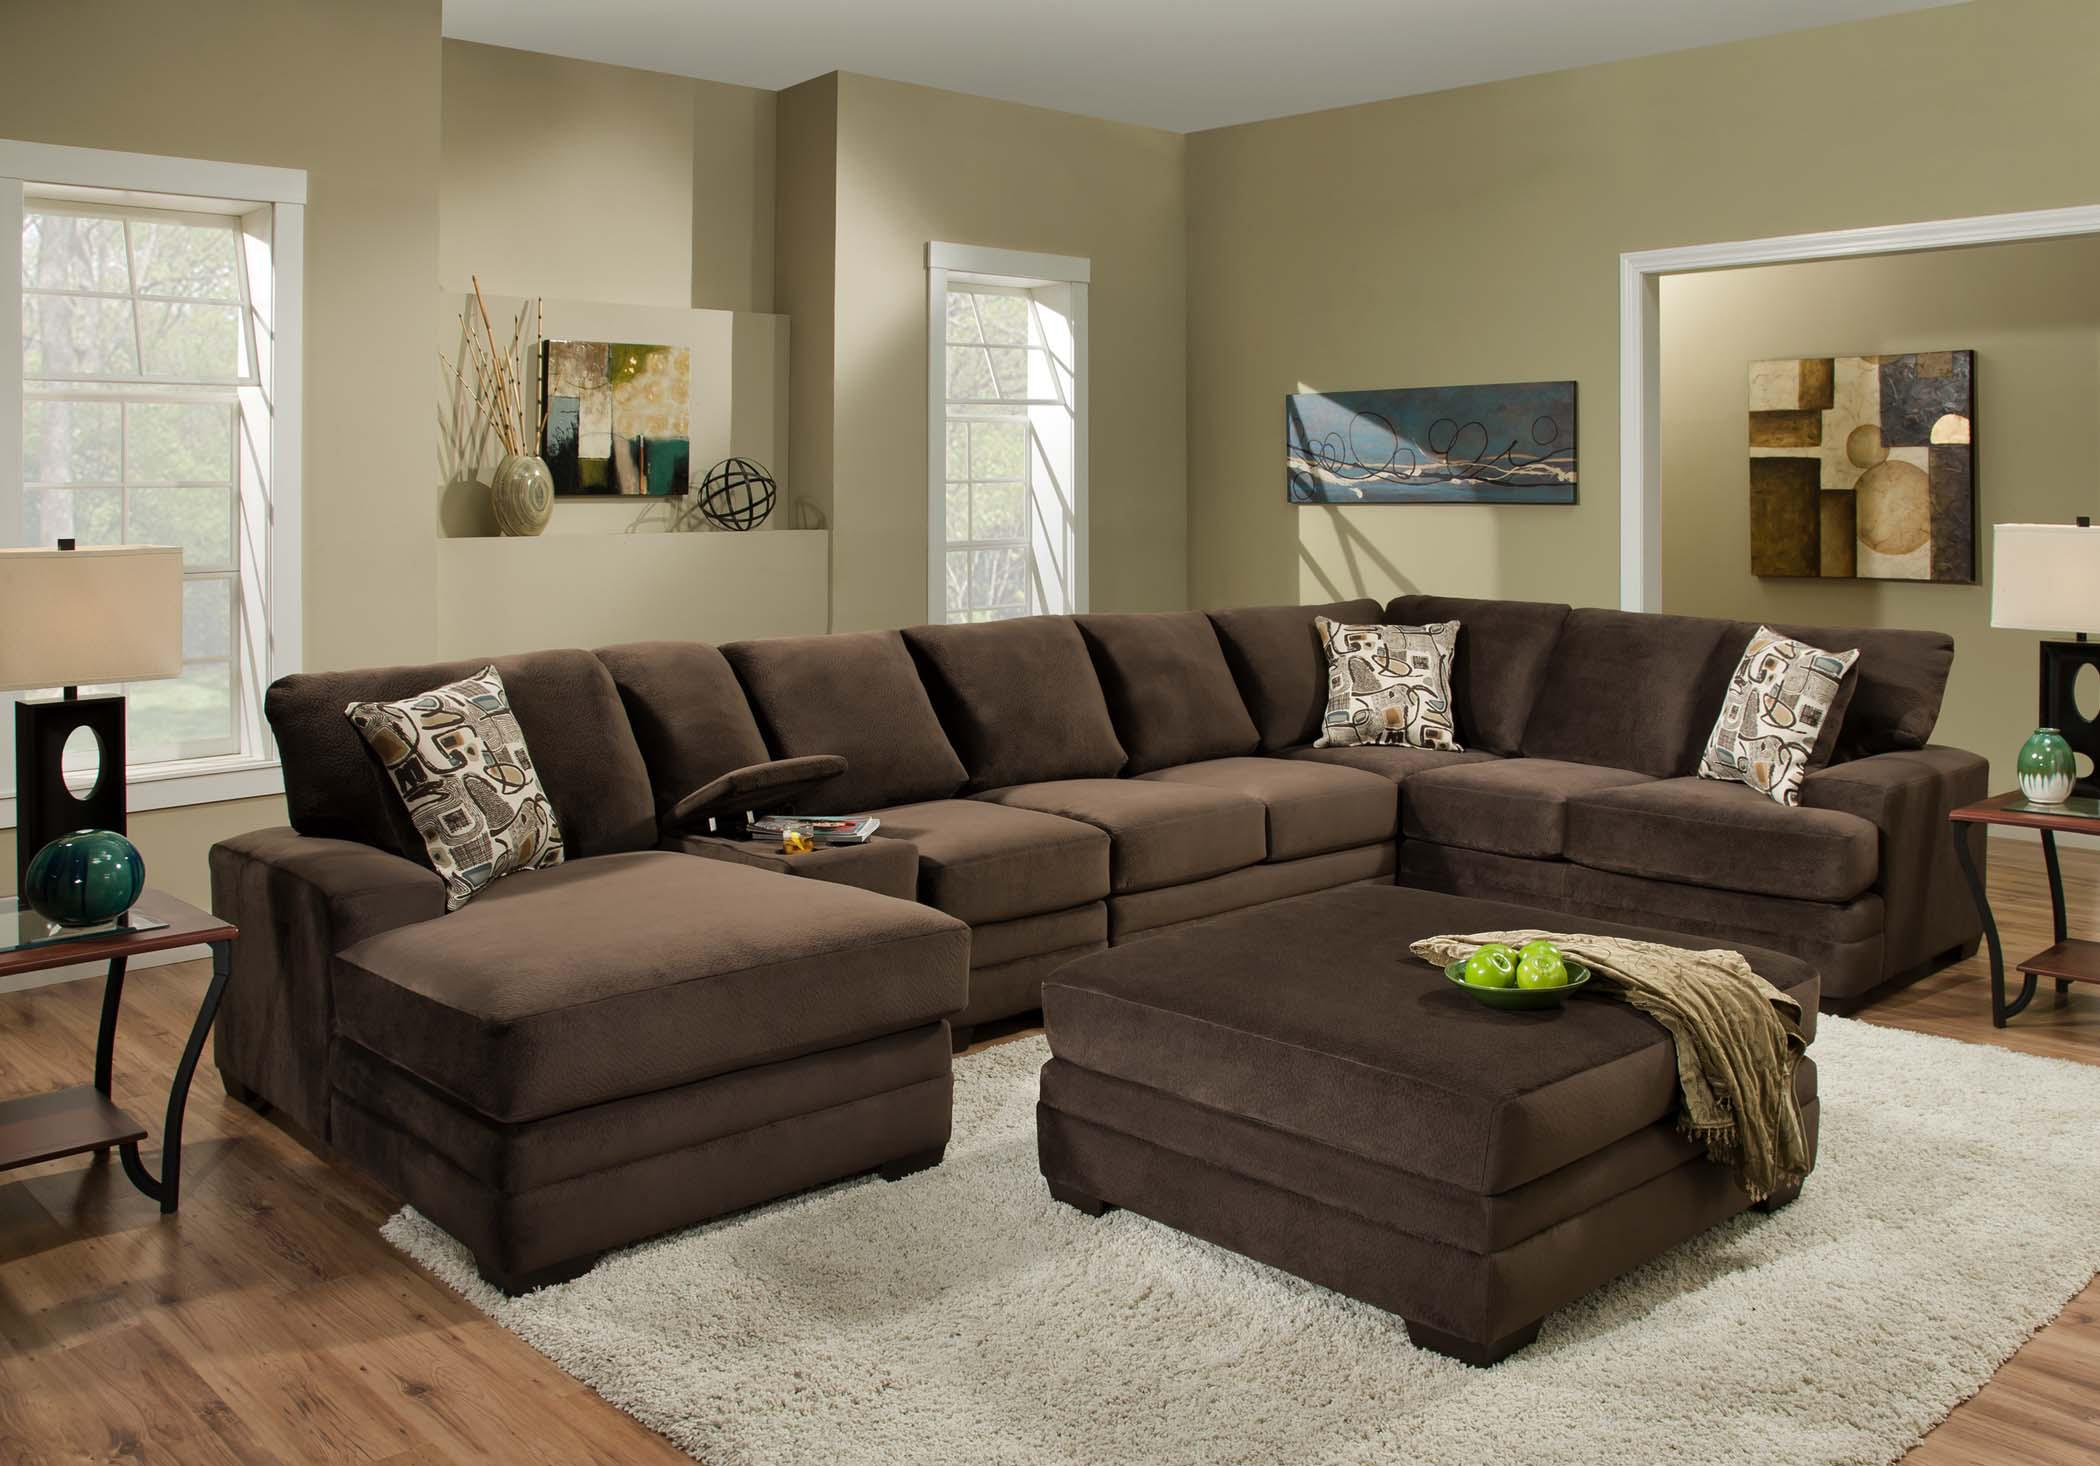 American furniture 3500 stationary living room group for Living room furniture groups